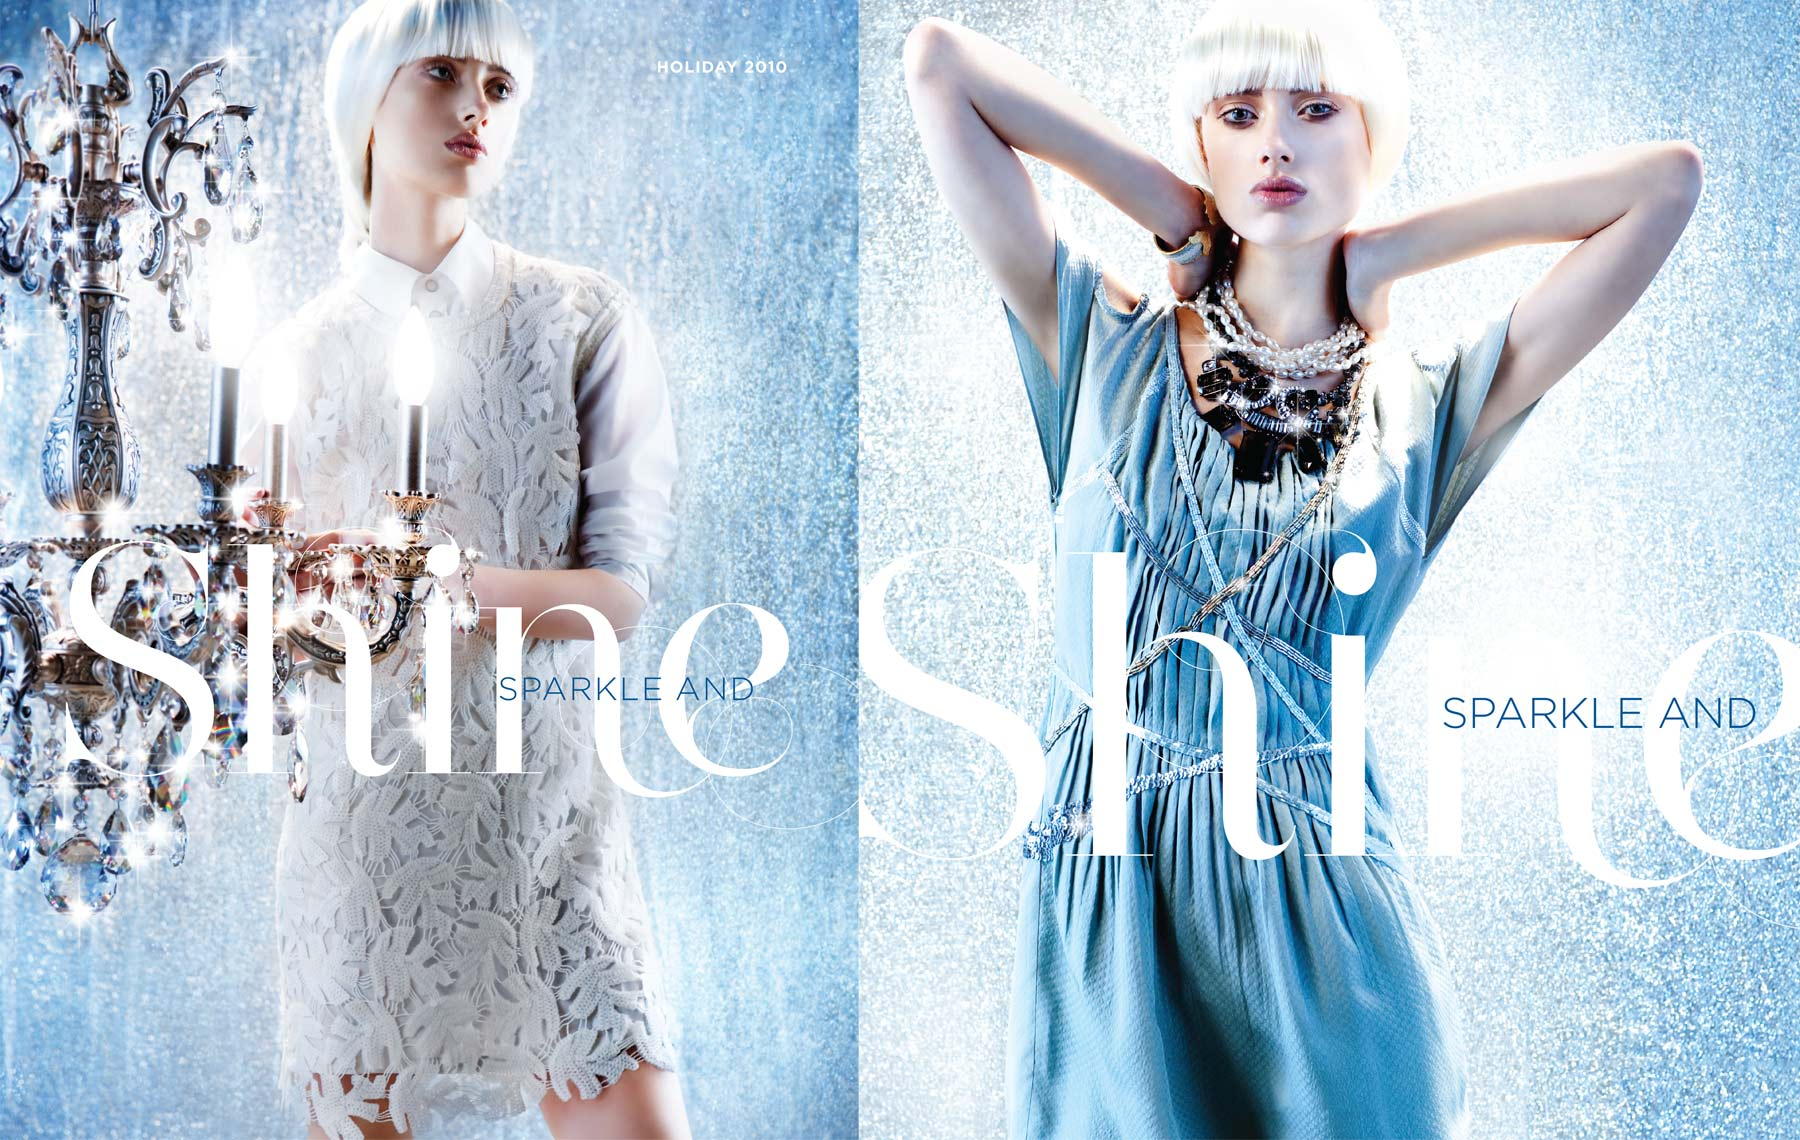 David-Fierro-Southgate-Winter-2010-Shine_Fashion_Photography_Advertising